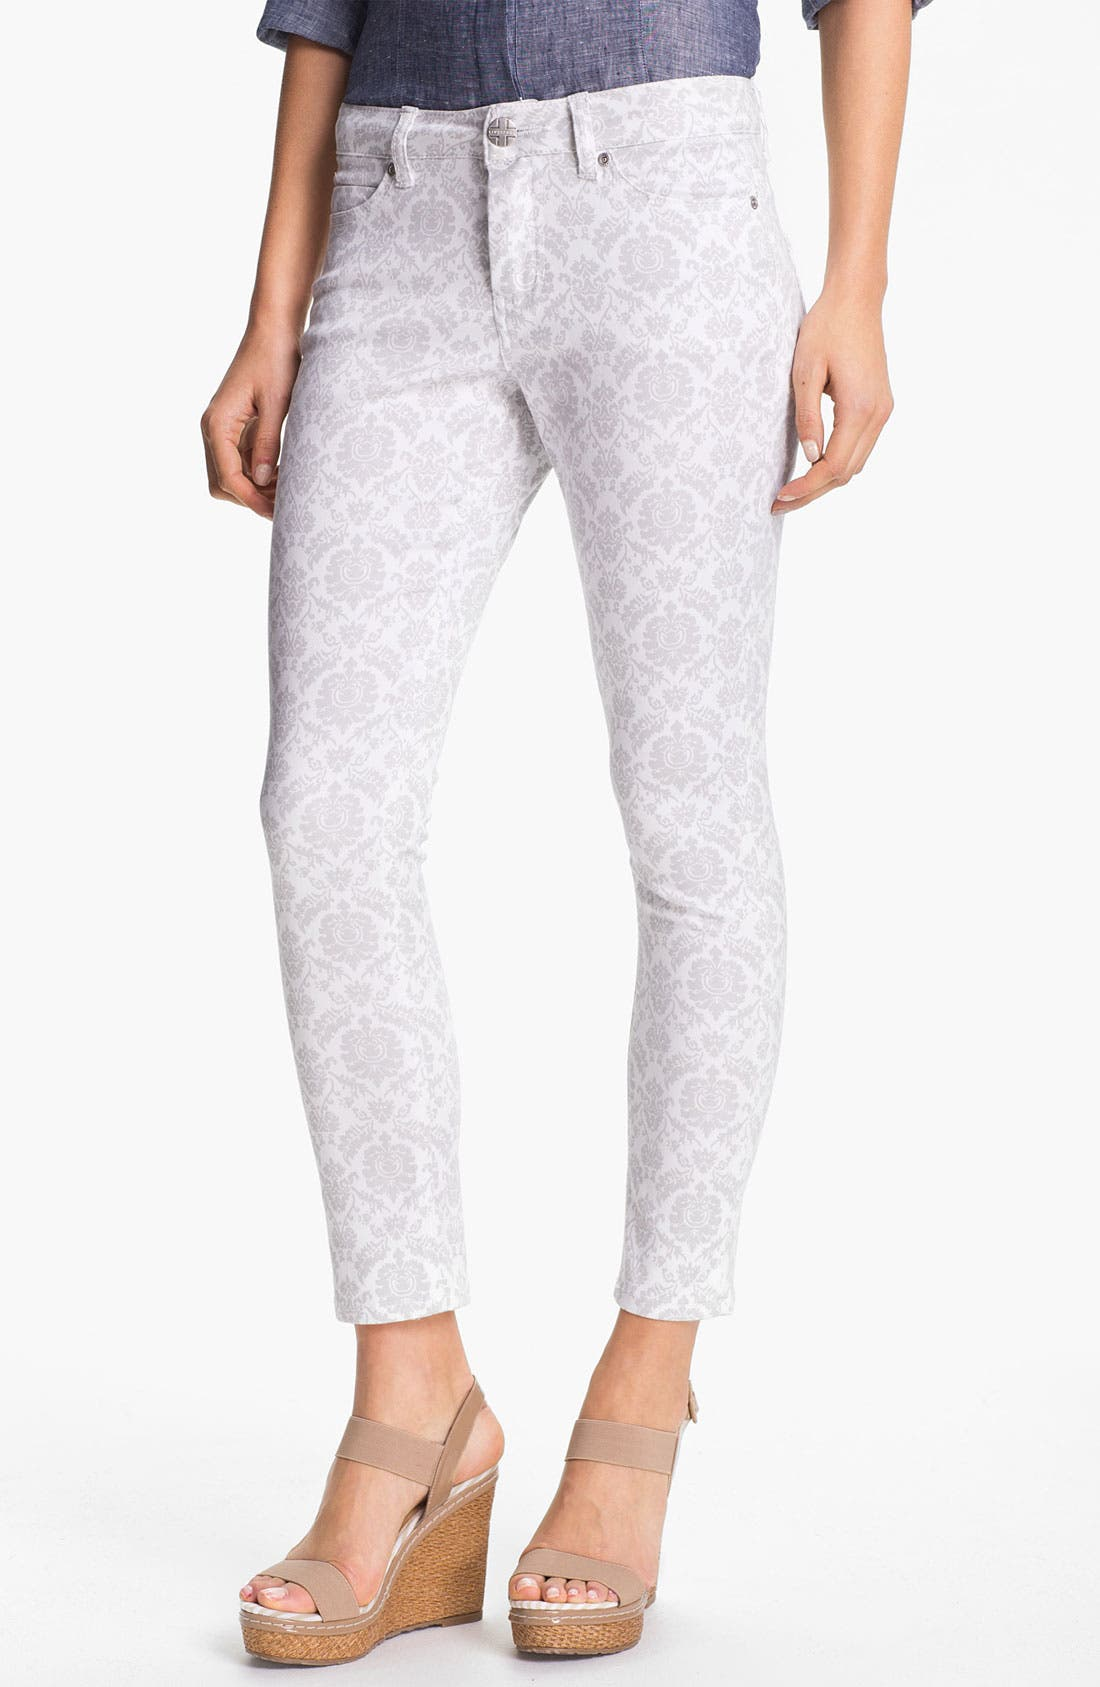 Alternate Image 1 Selected - Liverpool Jeans Company 'Abby' Skinny Print Ankle Jeans